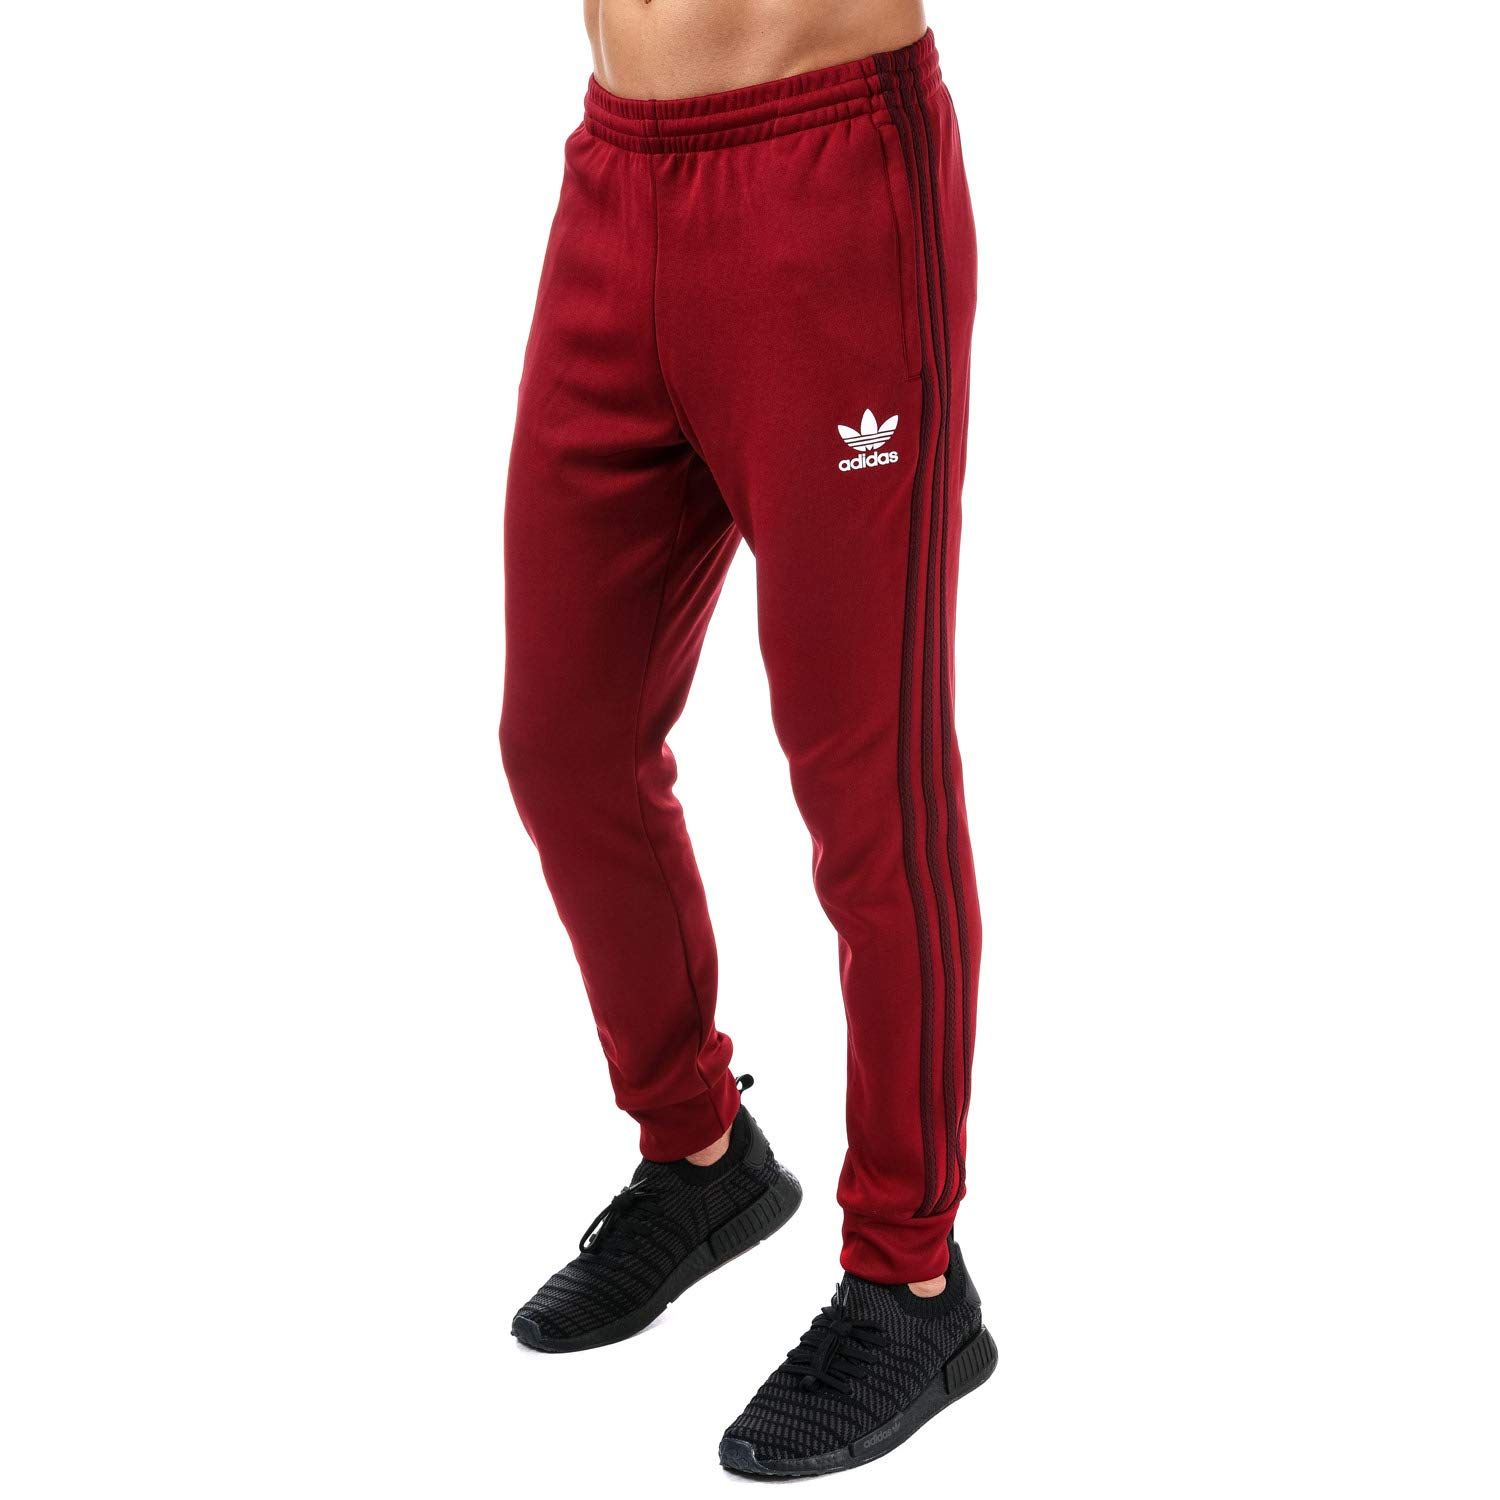 dfd1ade72cd adidas Originals Track Pant Mens Superstar SST Tracksuit Bottoms Trefoil  Slim Fit Pant New BQ7784 at Amazon Men's Clothing store: